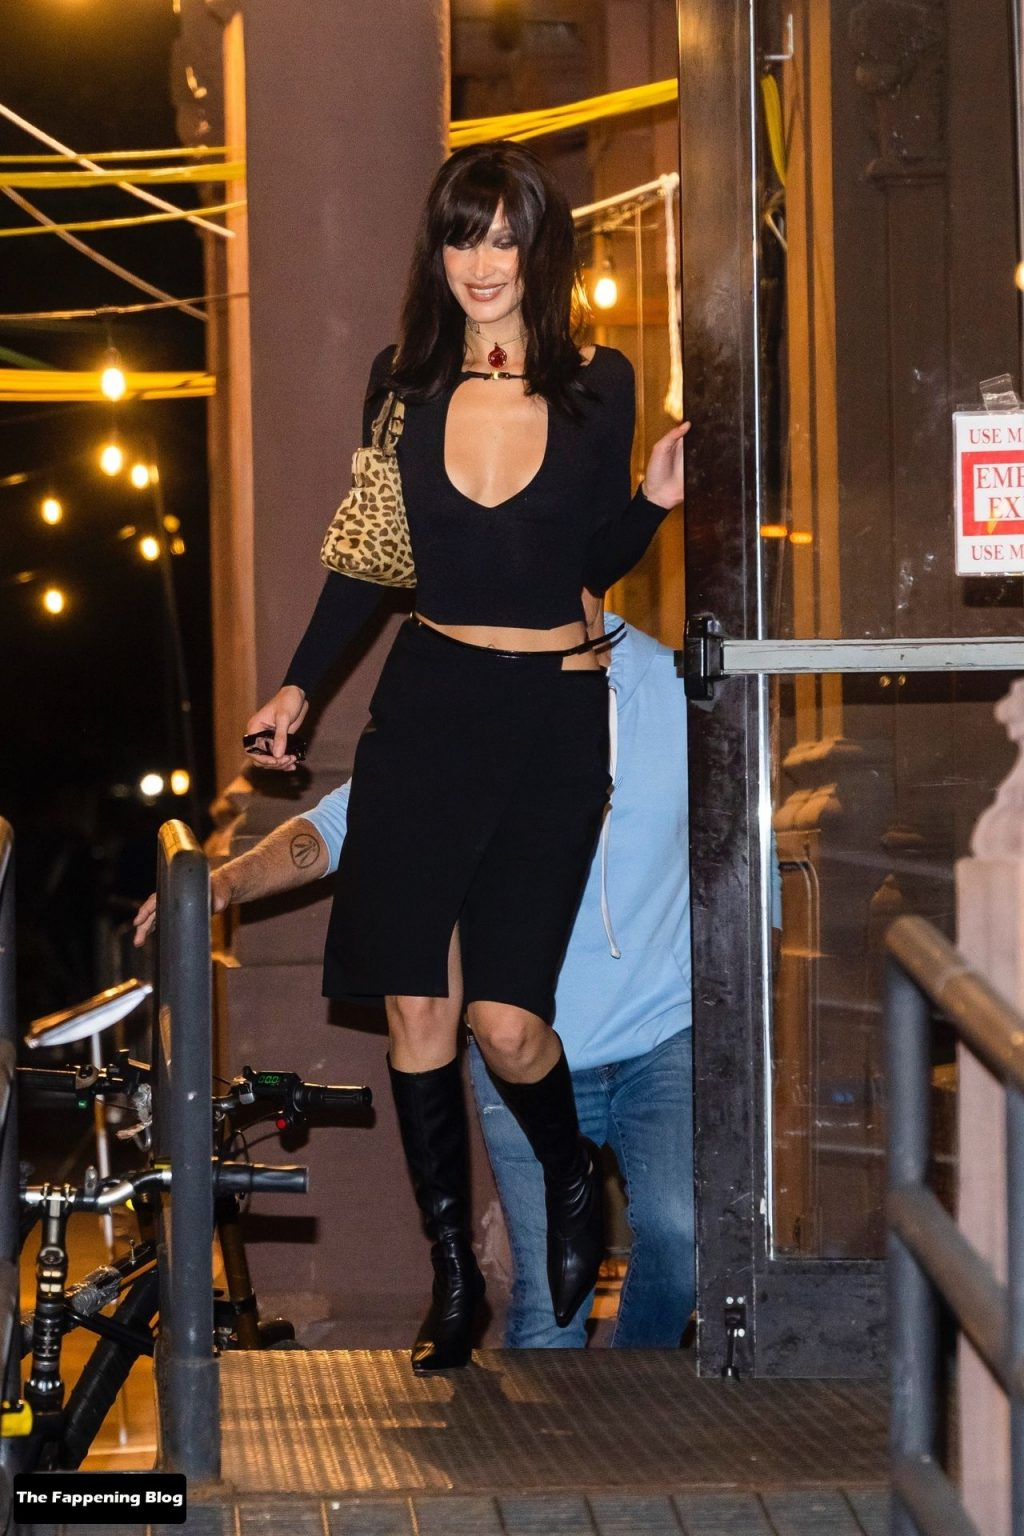 Bella Hadid Goes Braless as She Celebrates Her 25th Birthday in New York (82 Photos)